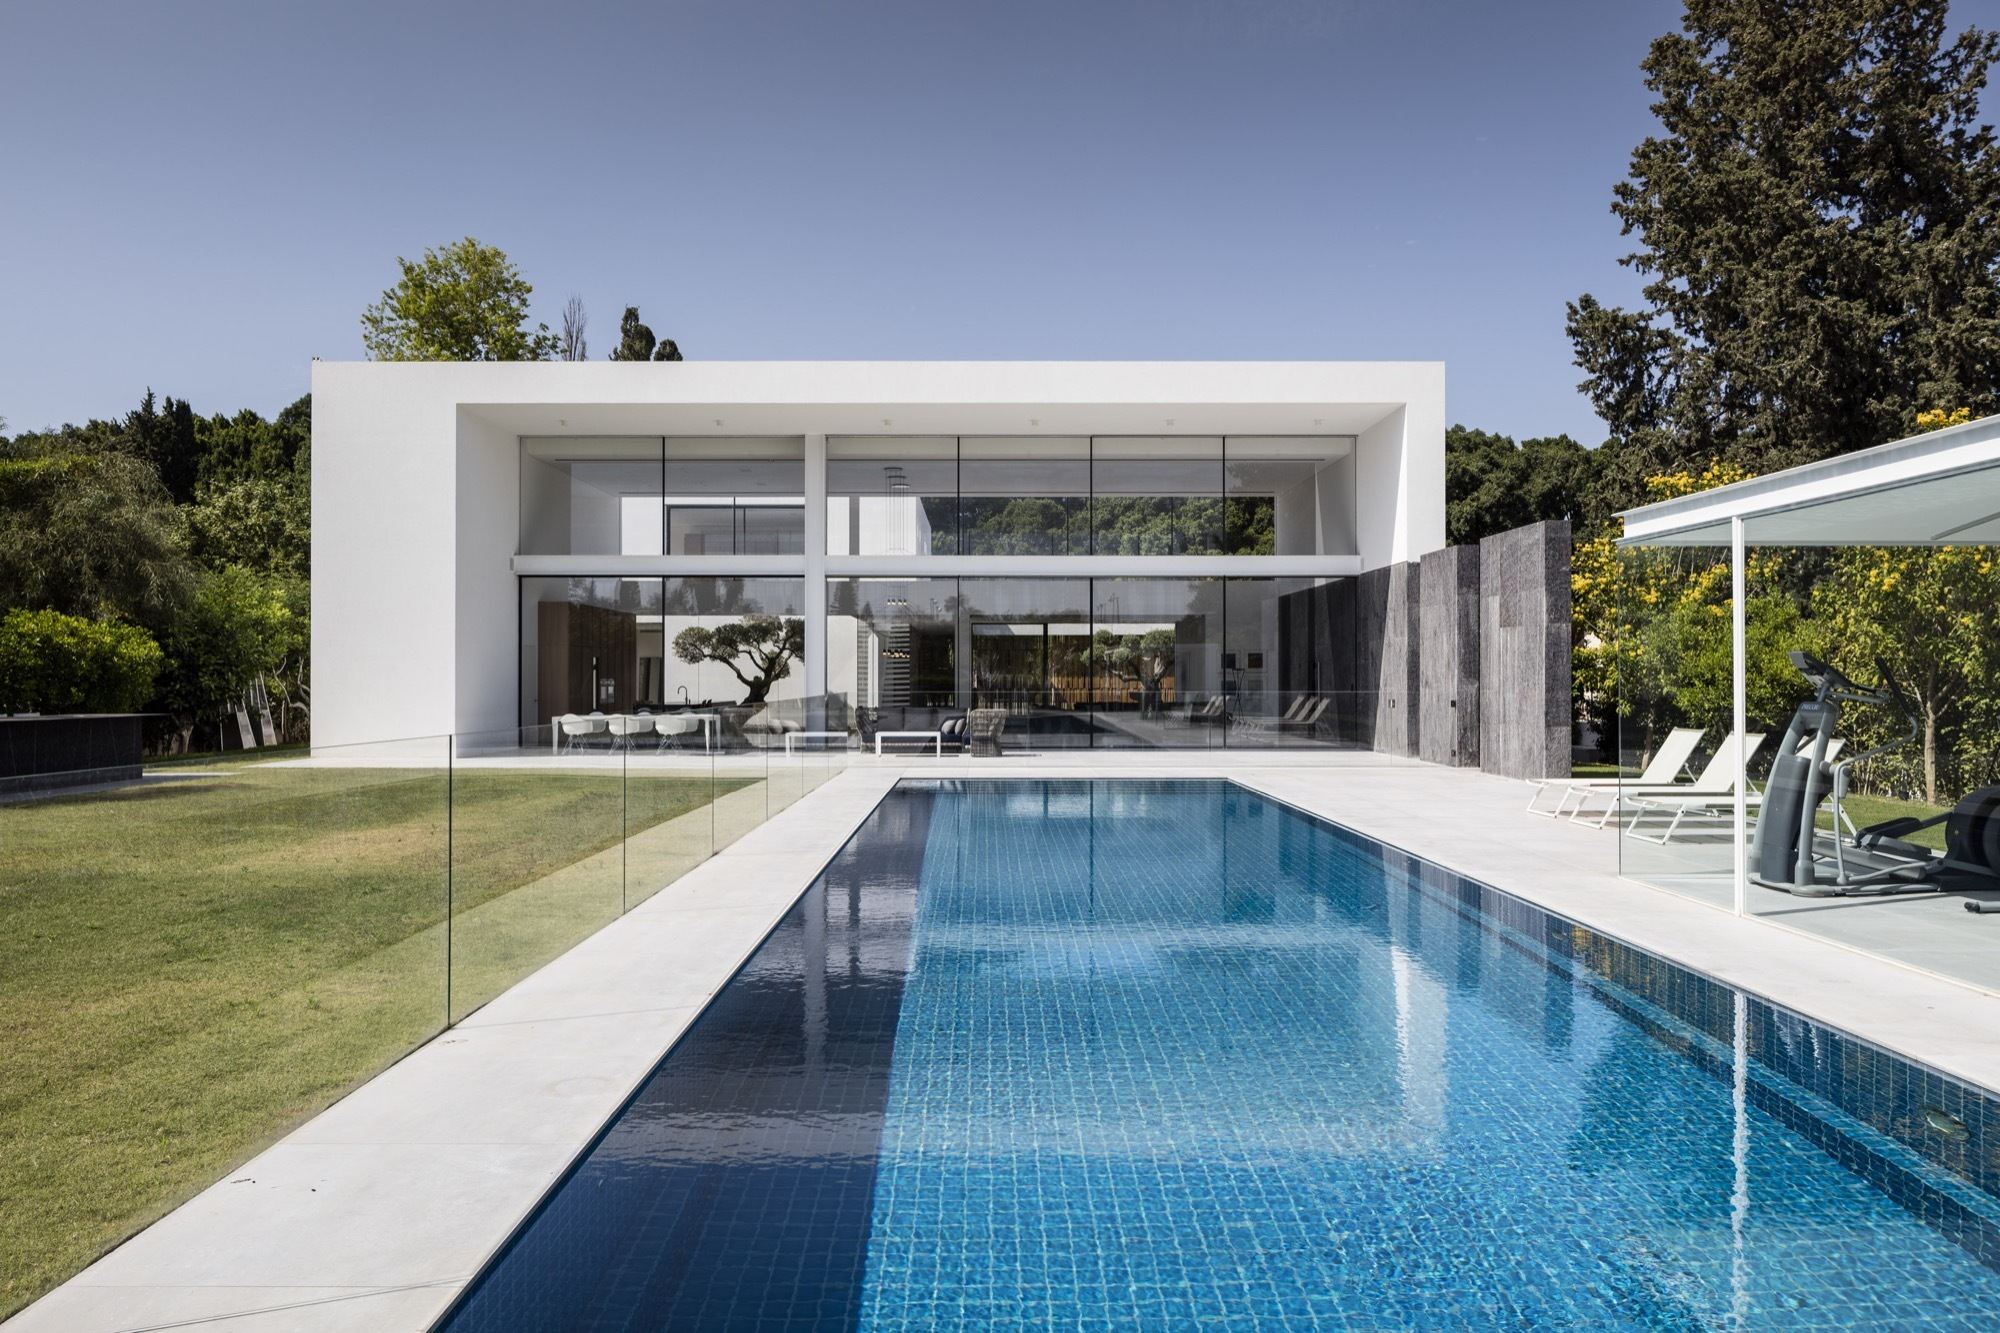 F house pitsou kedem architects archdaily for Casa tipo minimalista